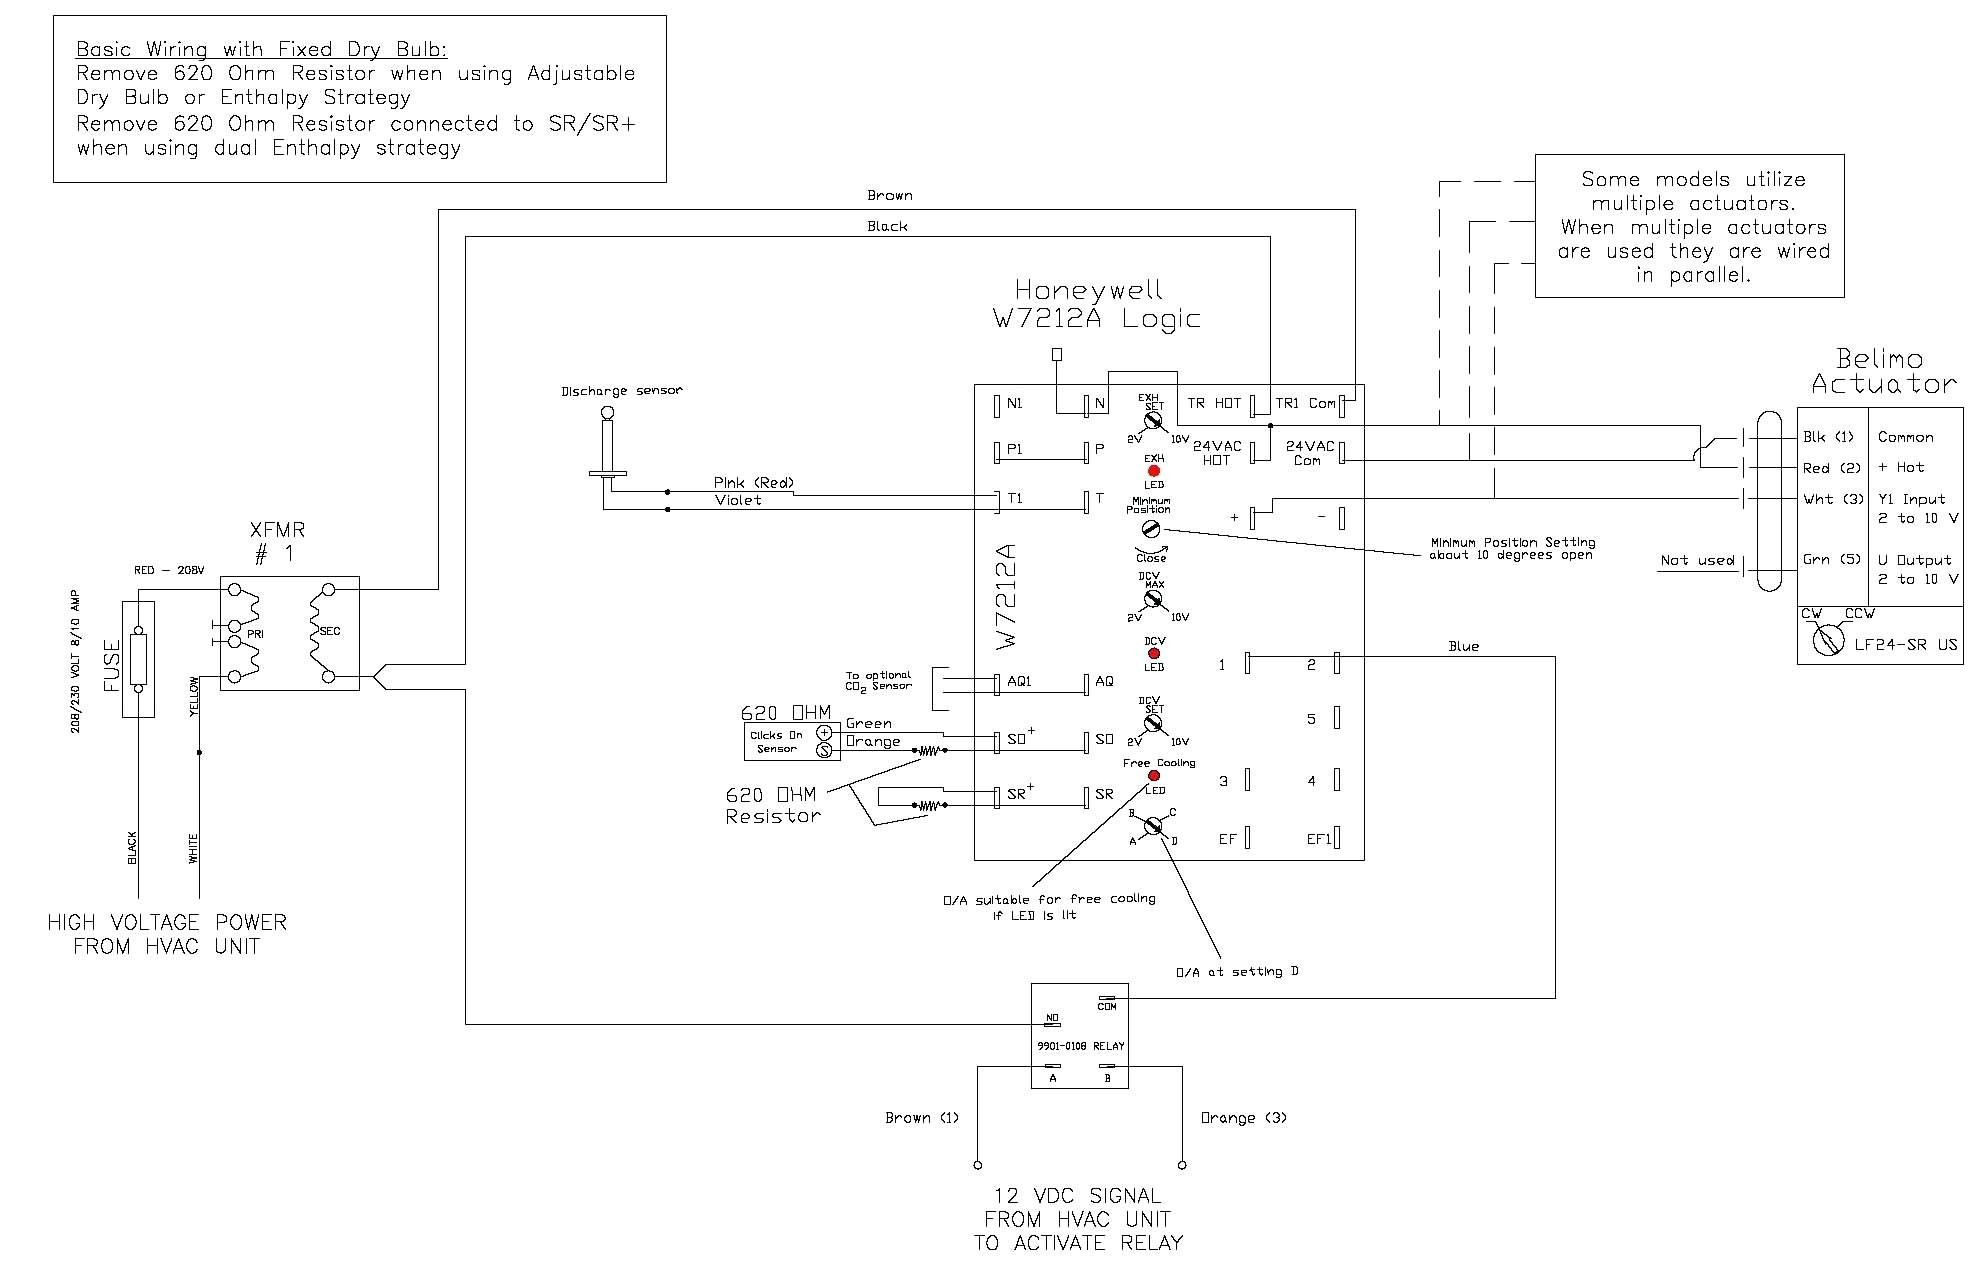 Hvac fan relay wiring diagram hvac fan relay wiring diagram symbols hvac fan relay wiring diagram hvac fan relay wiring diagram symbols aircraft i just purchased a asfbconference2016 Choice Image